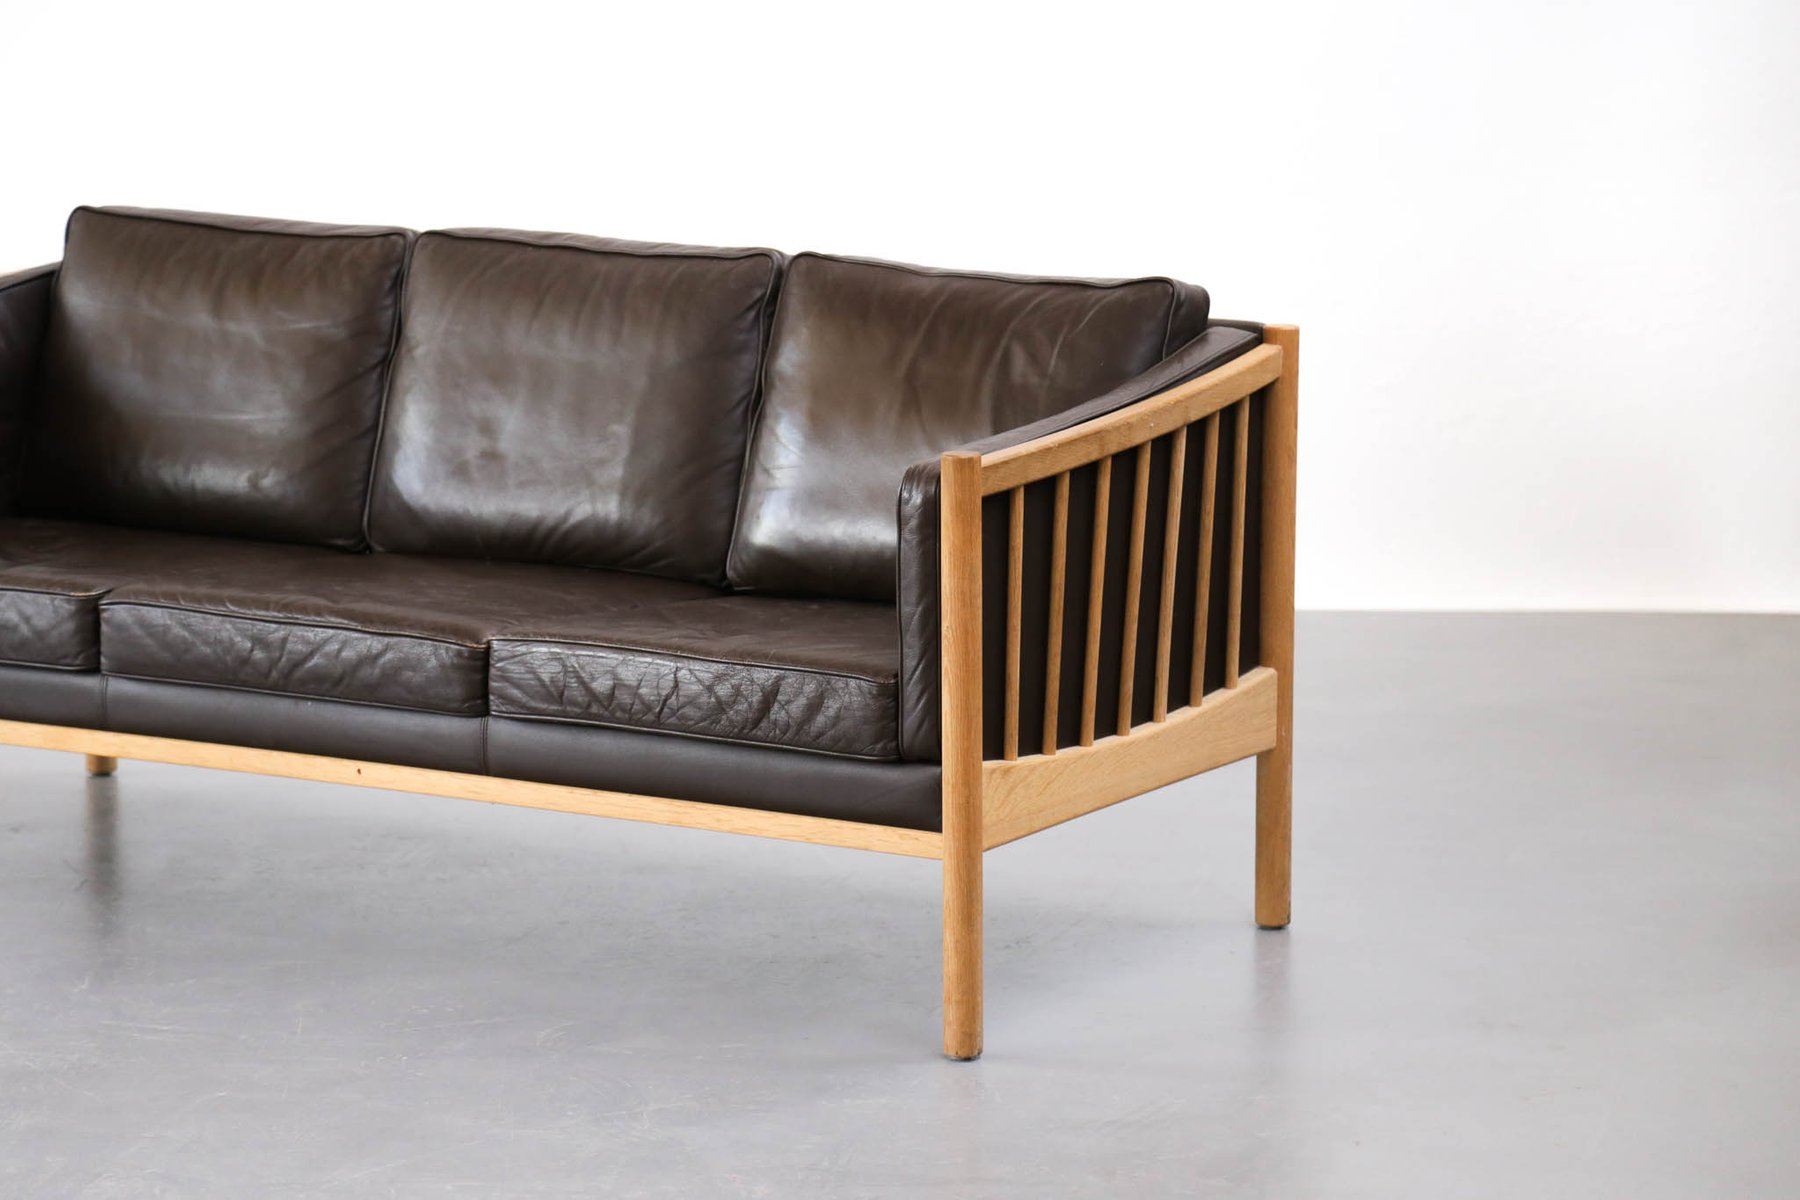 Mid Century Scandinavian Brown Leather Sofa 1970s for sale at Pamono